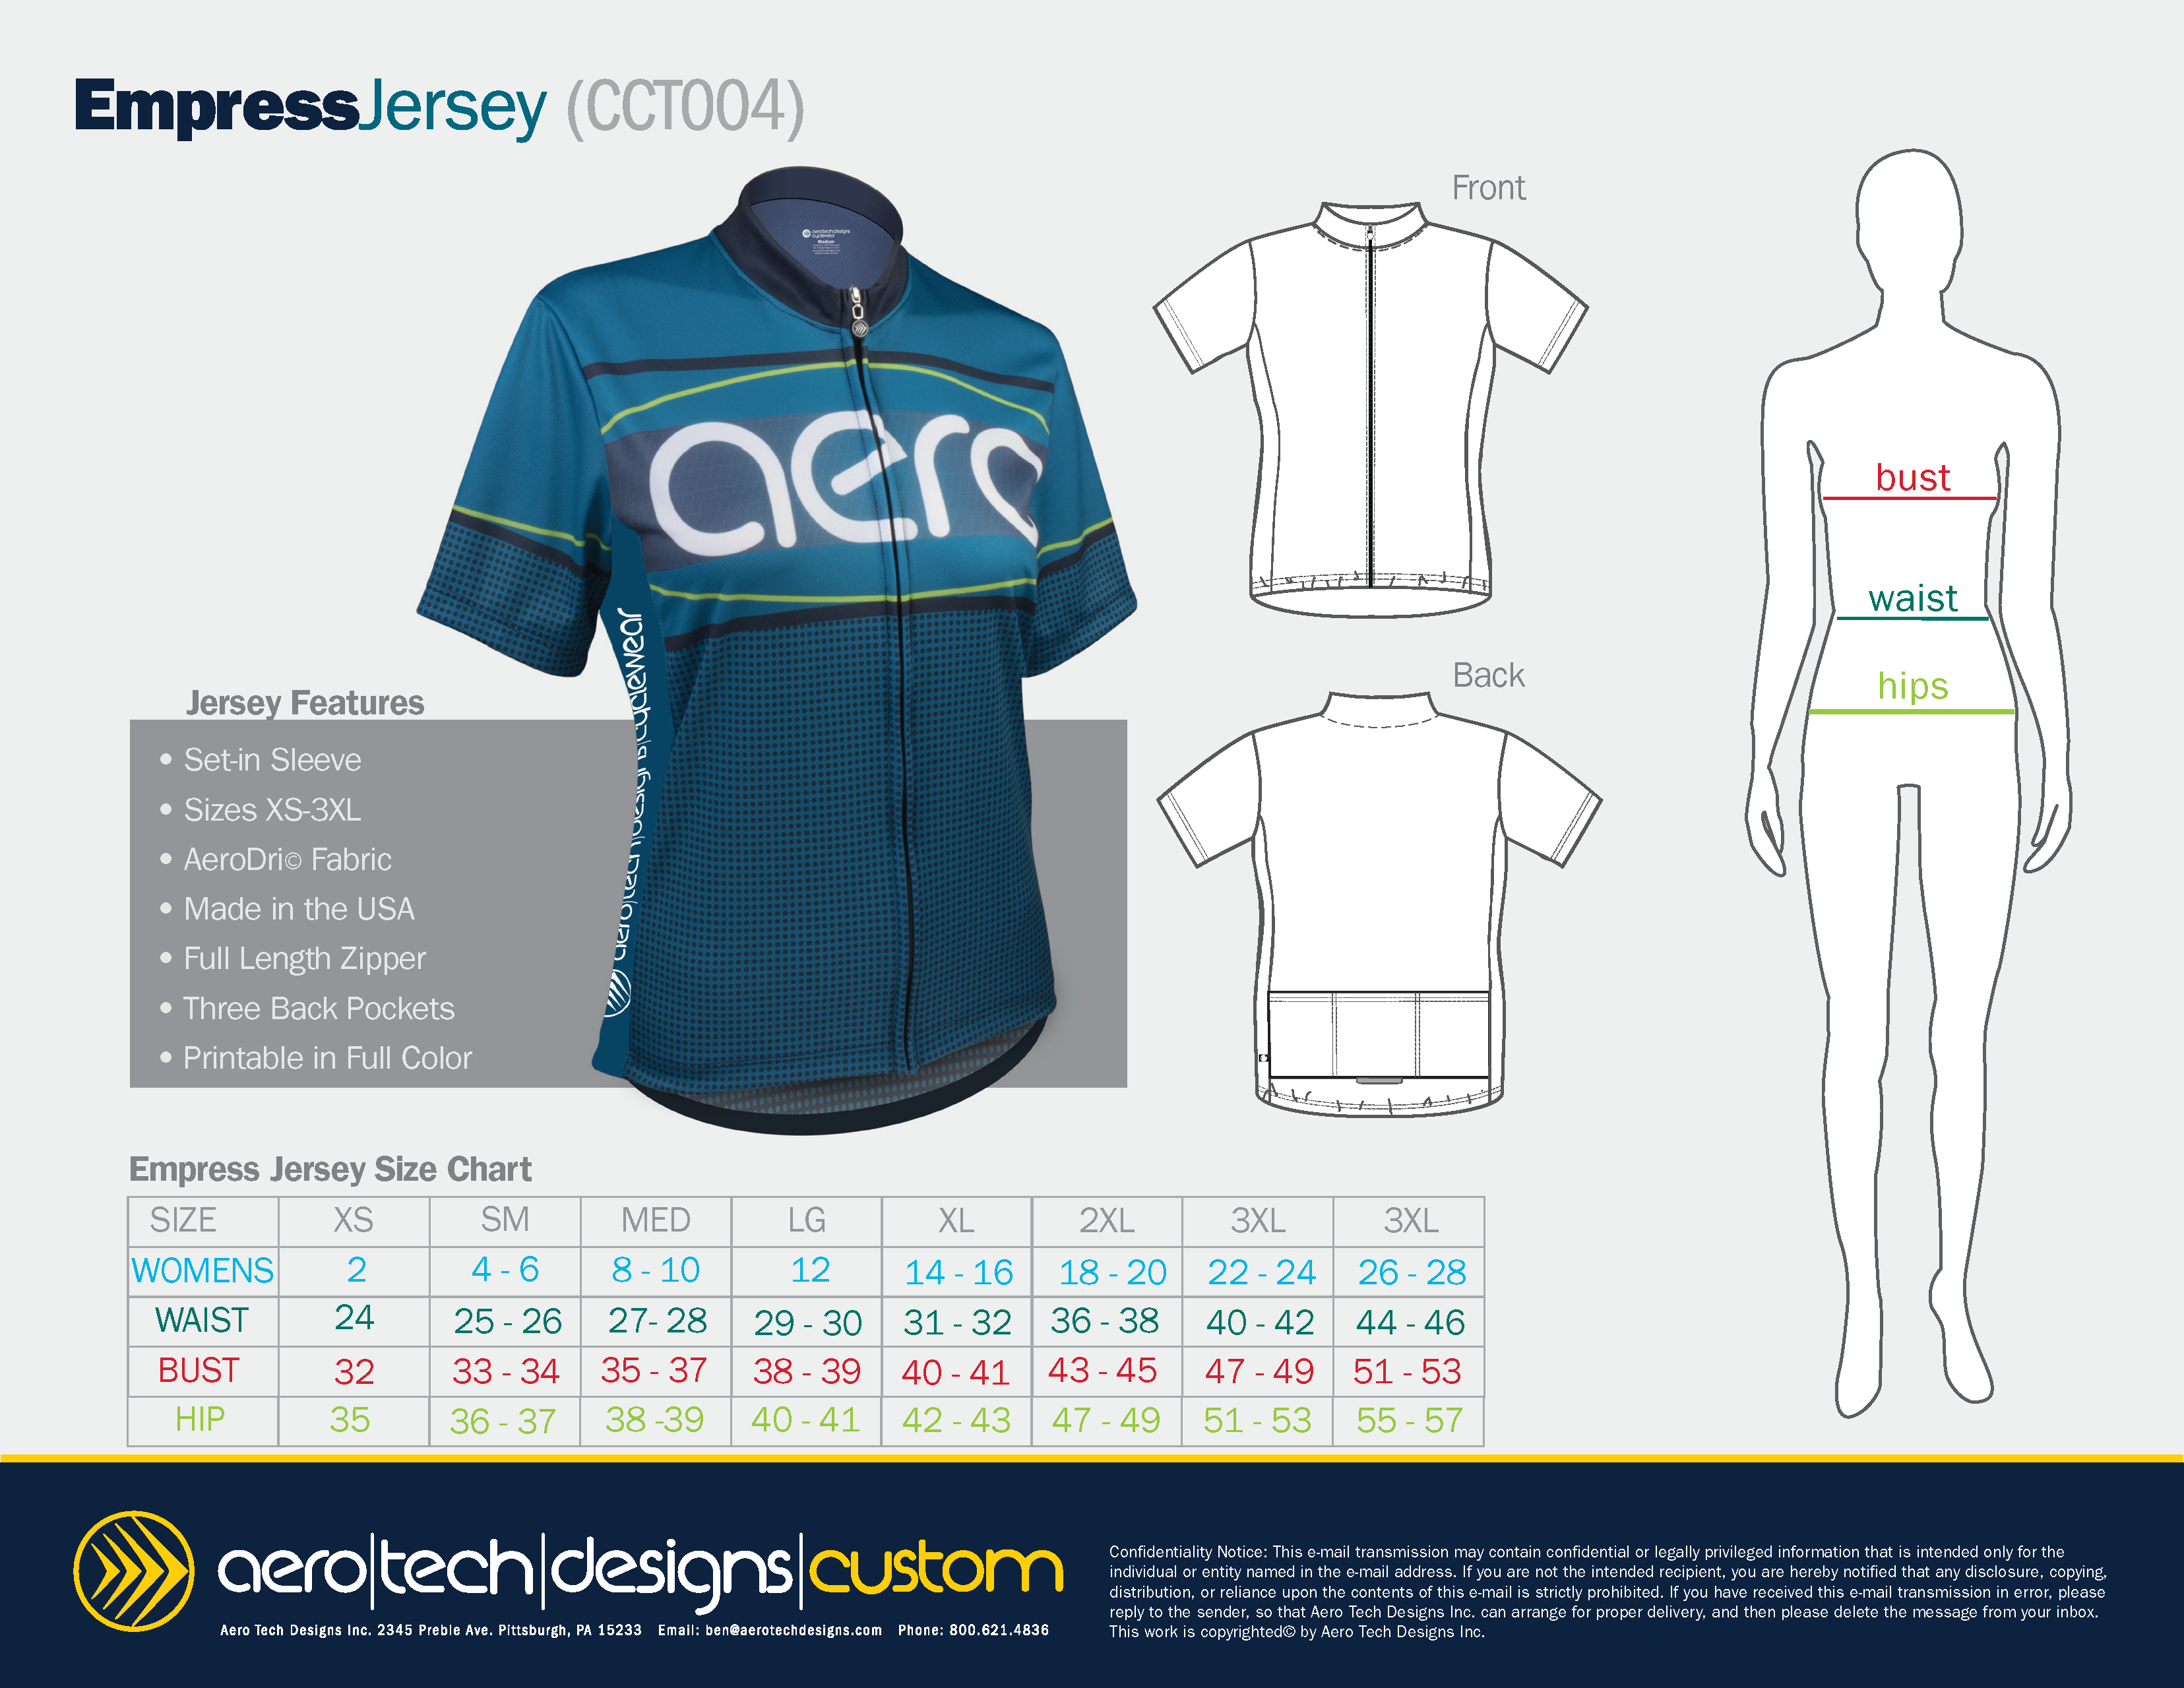 size-chart-empressjersey-cct004.png